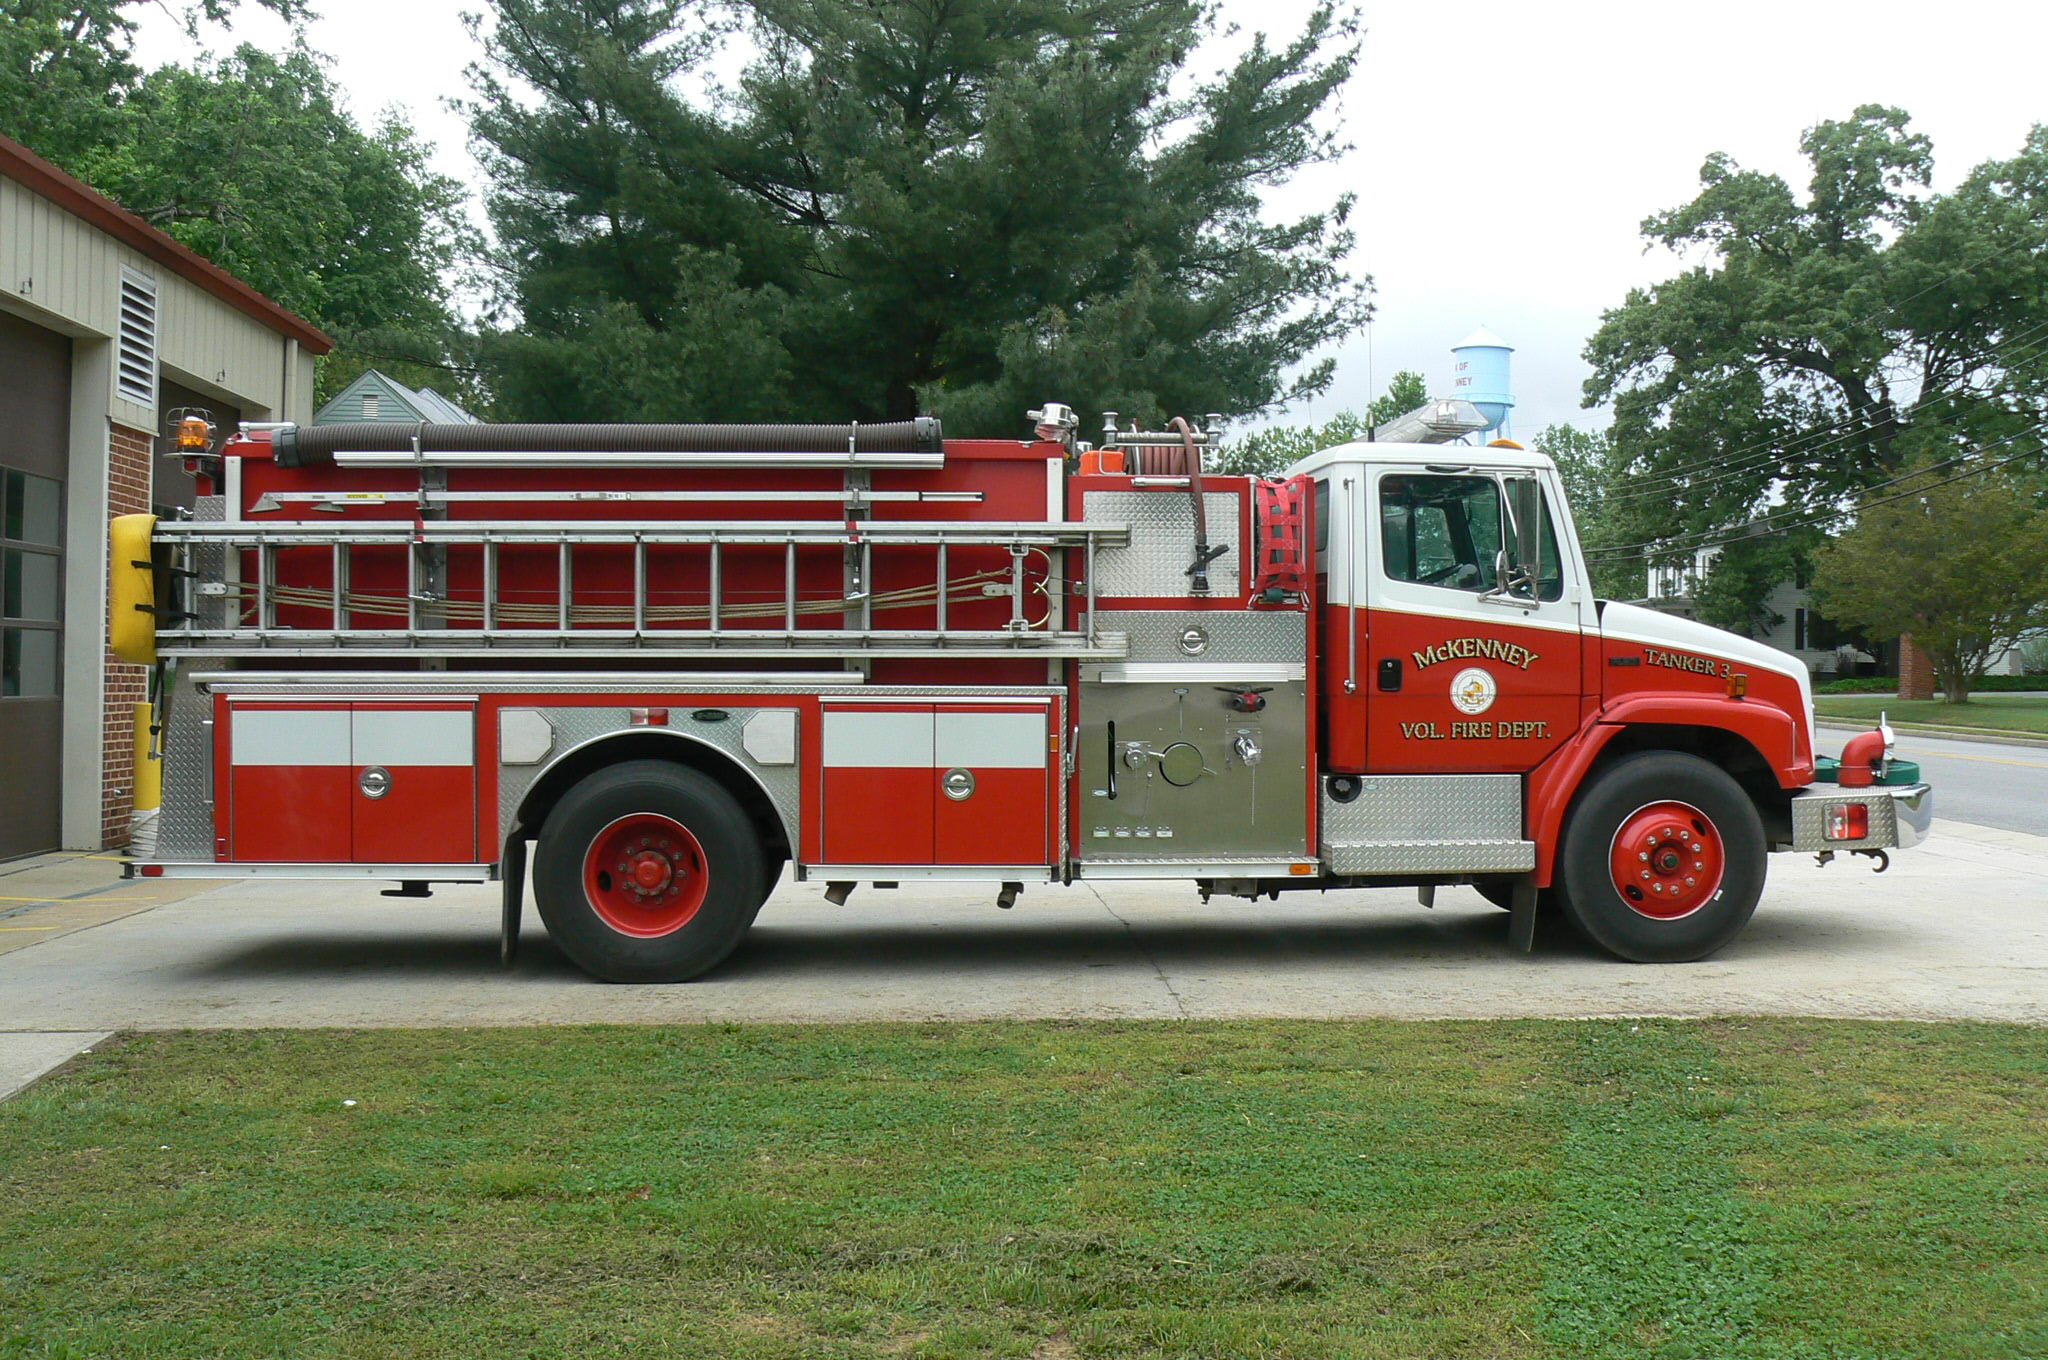 Red fire tanker truck with ladder